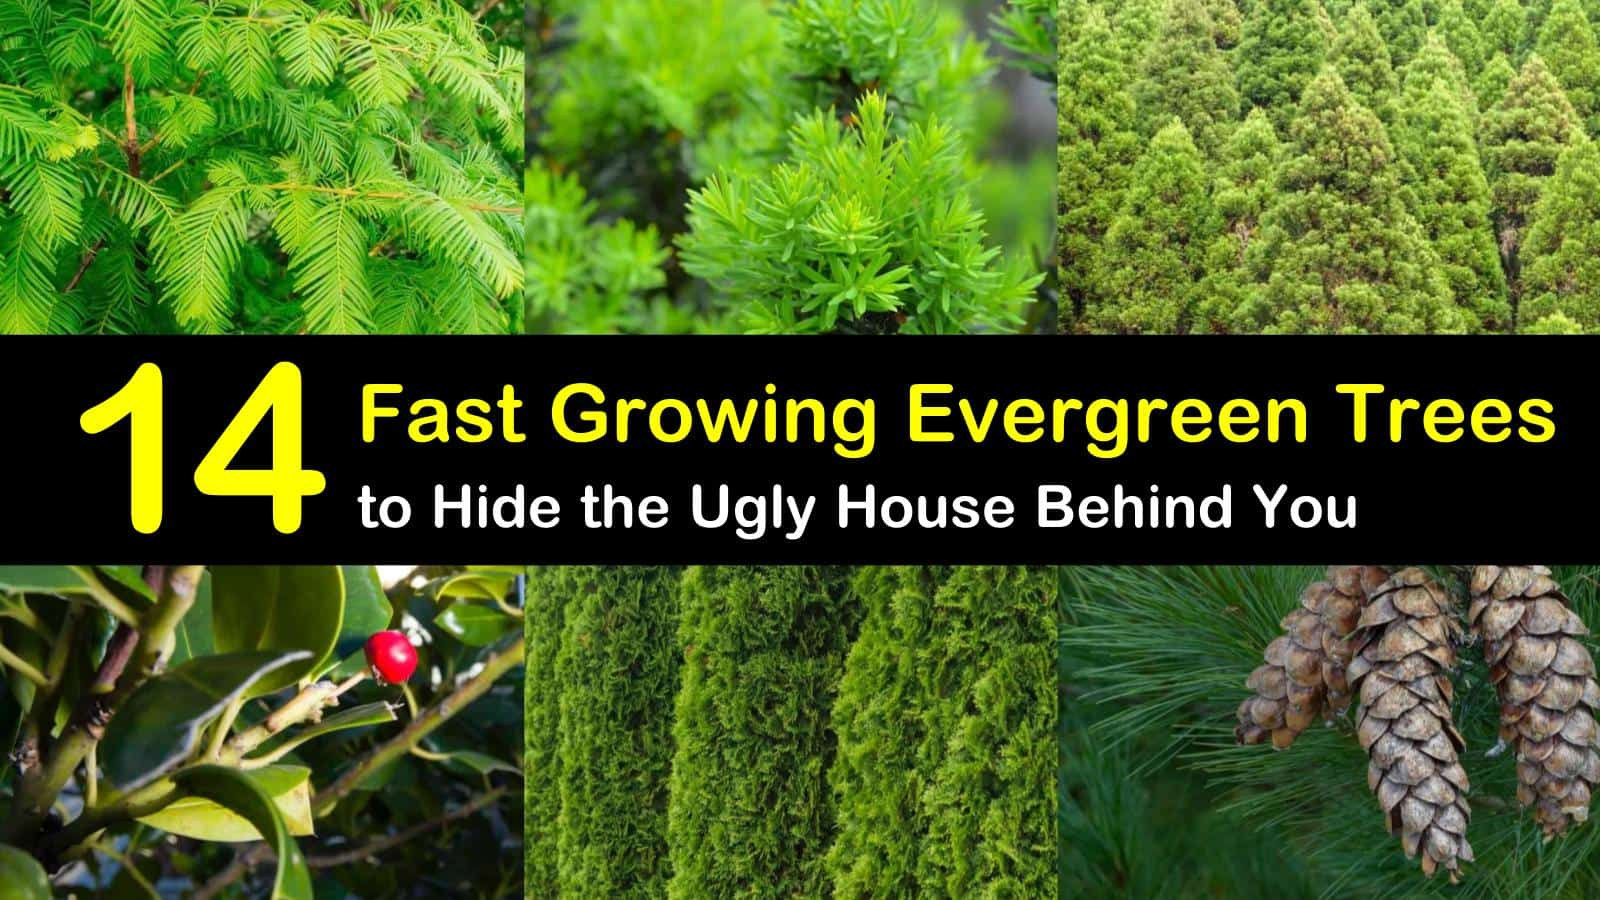 fast growing evergreen trees titleimg1